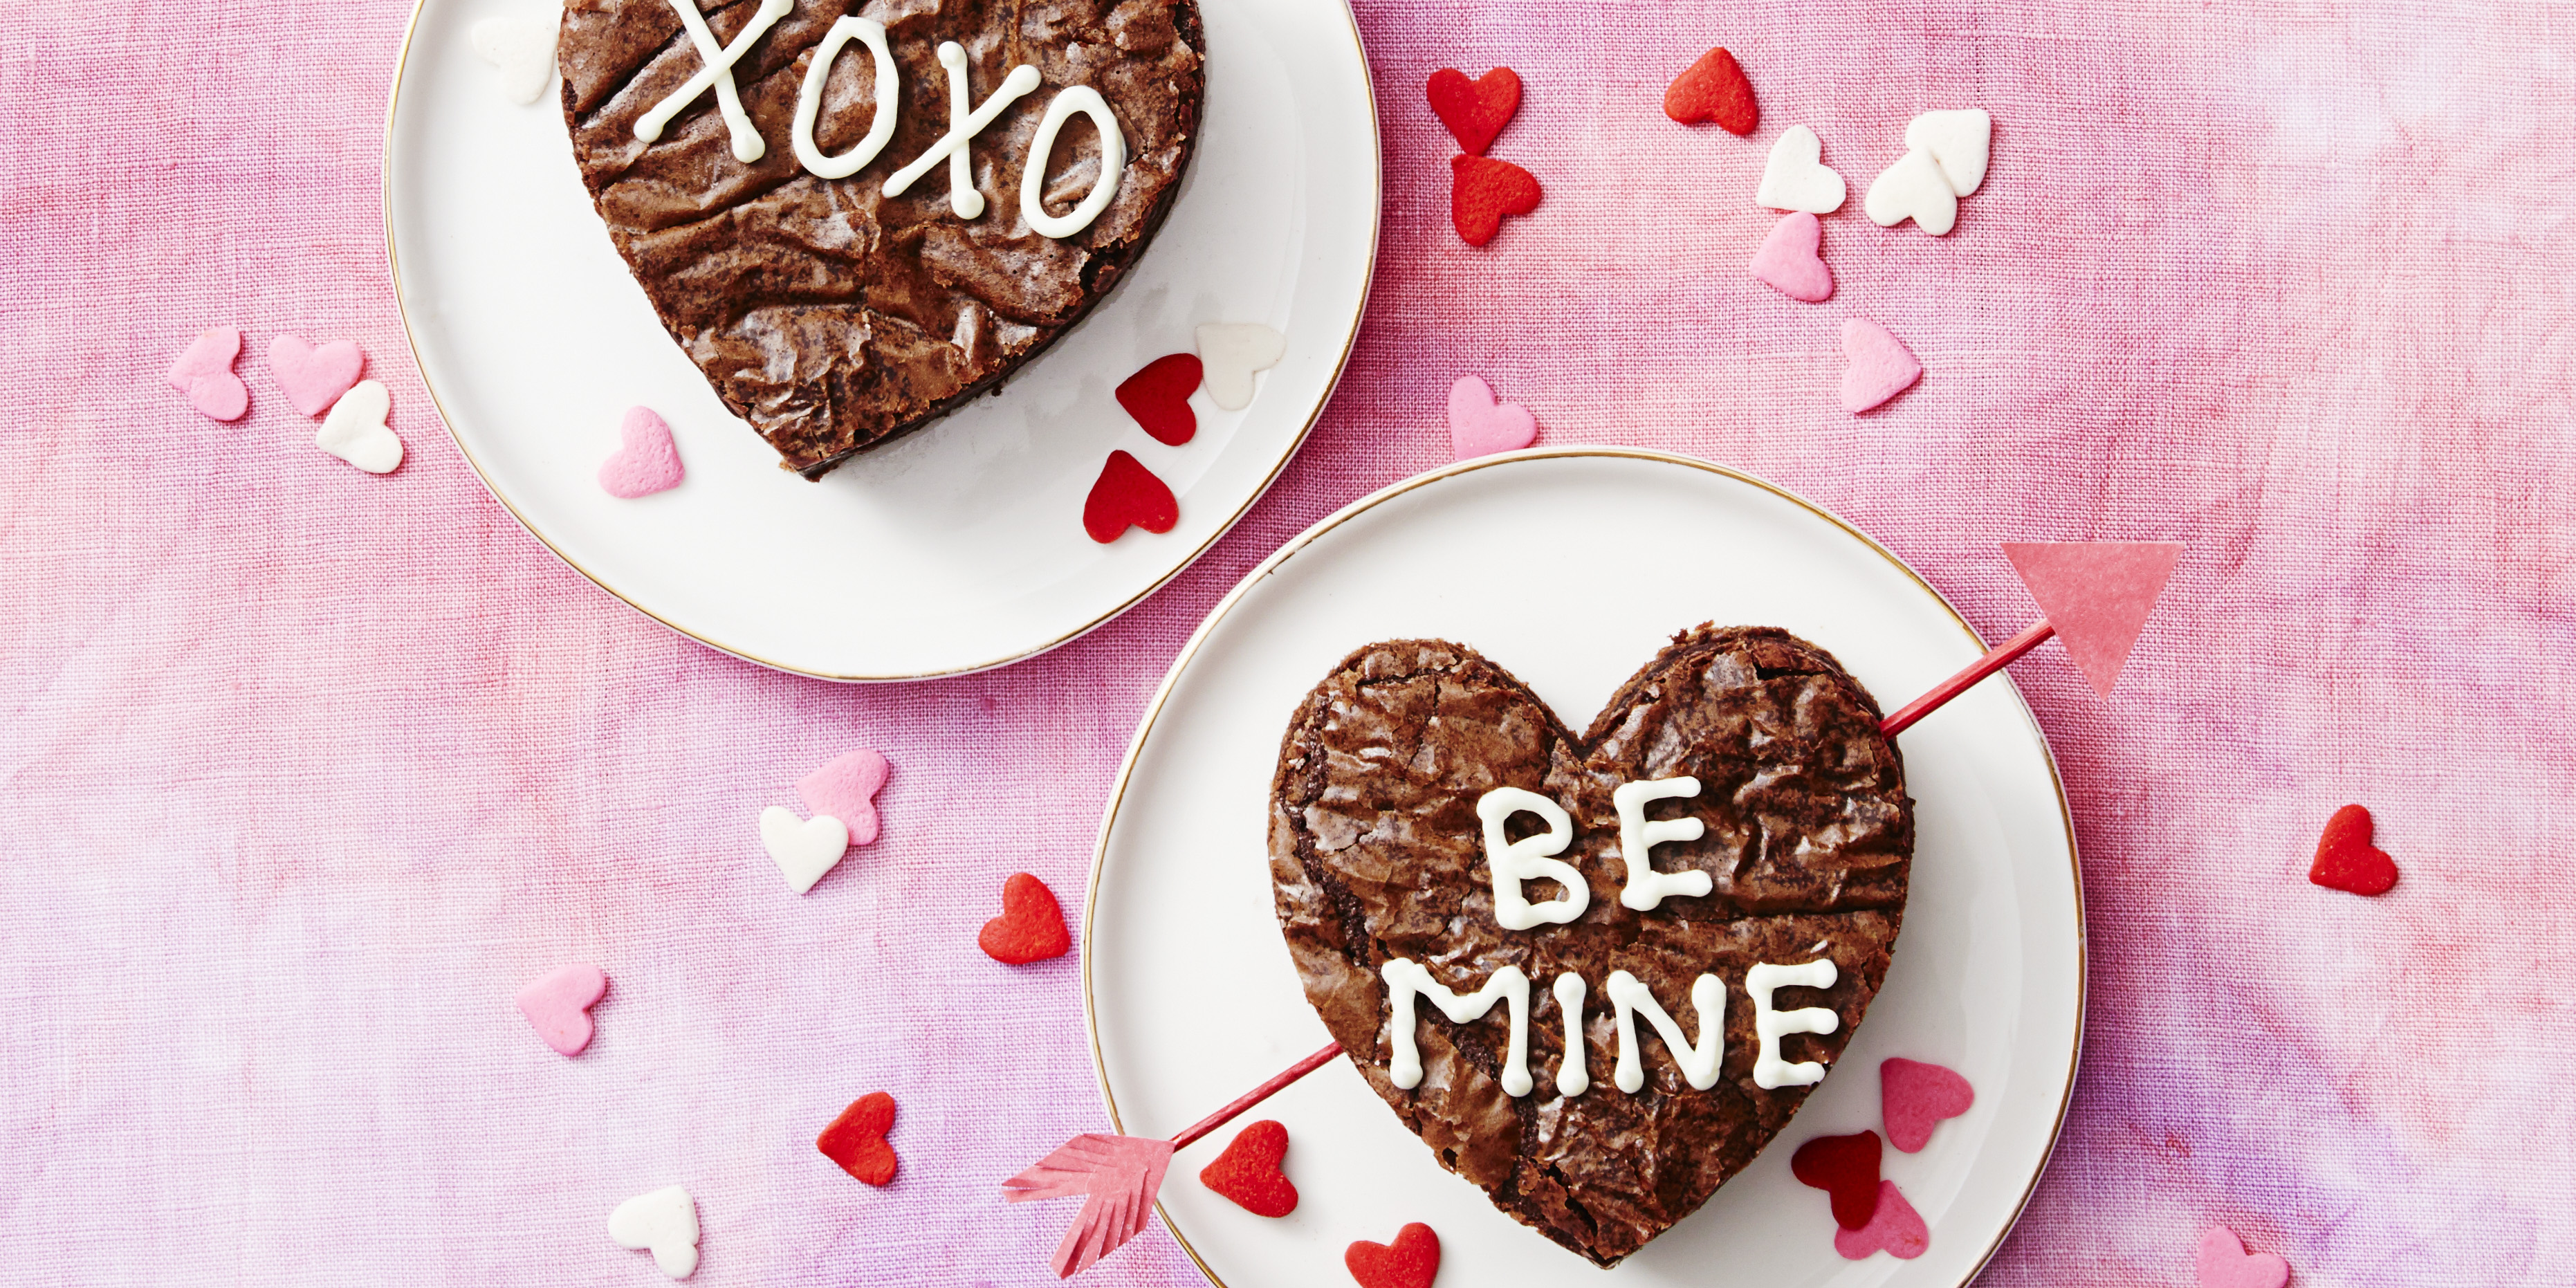 40 best valentines day dessert recipes easy ideas for valentines day cakes and sweets - Valentines Day Sweets